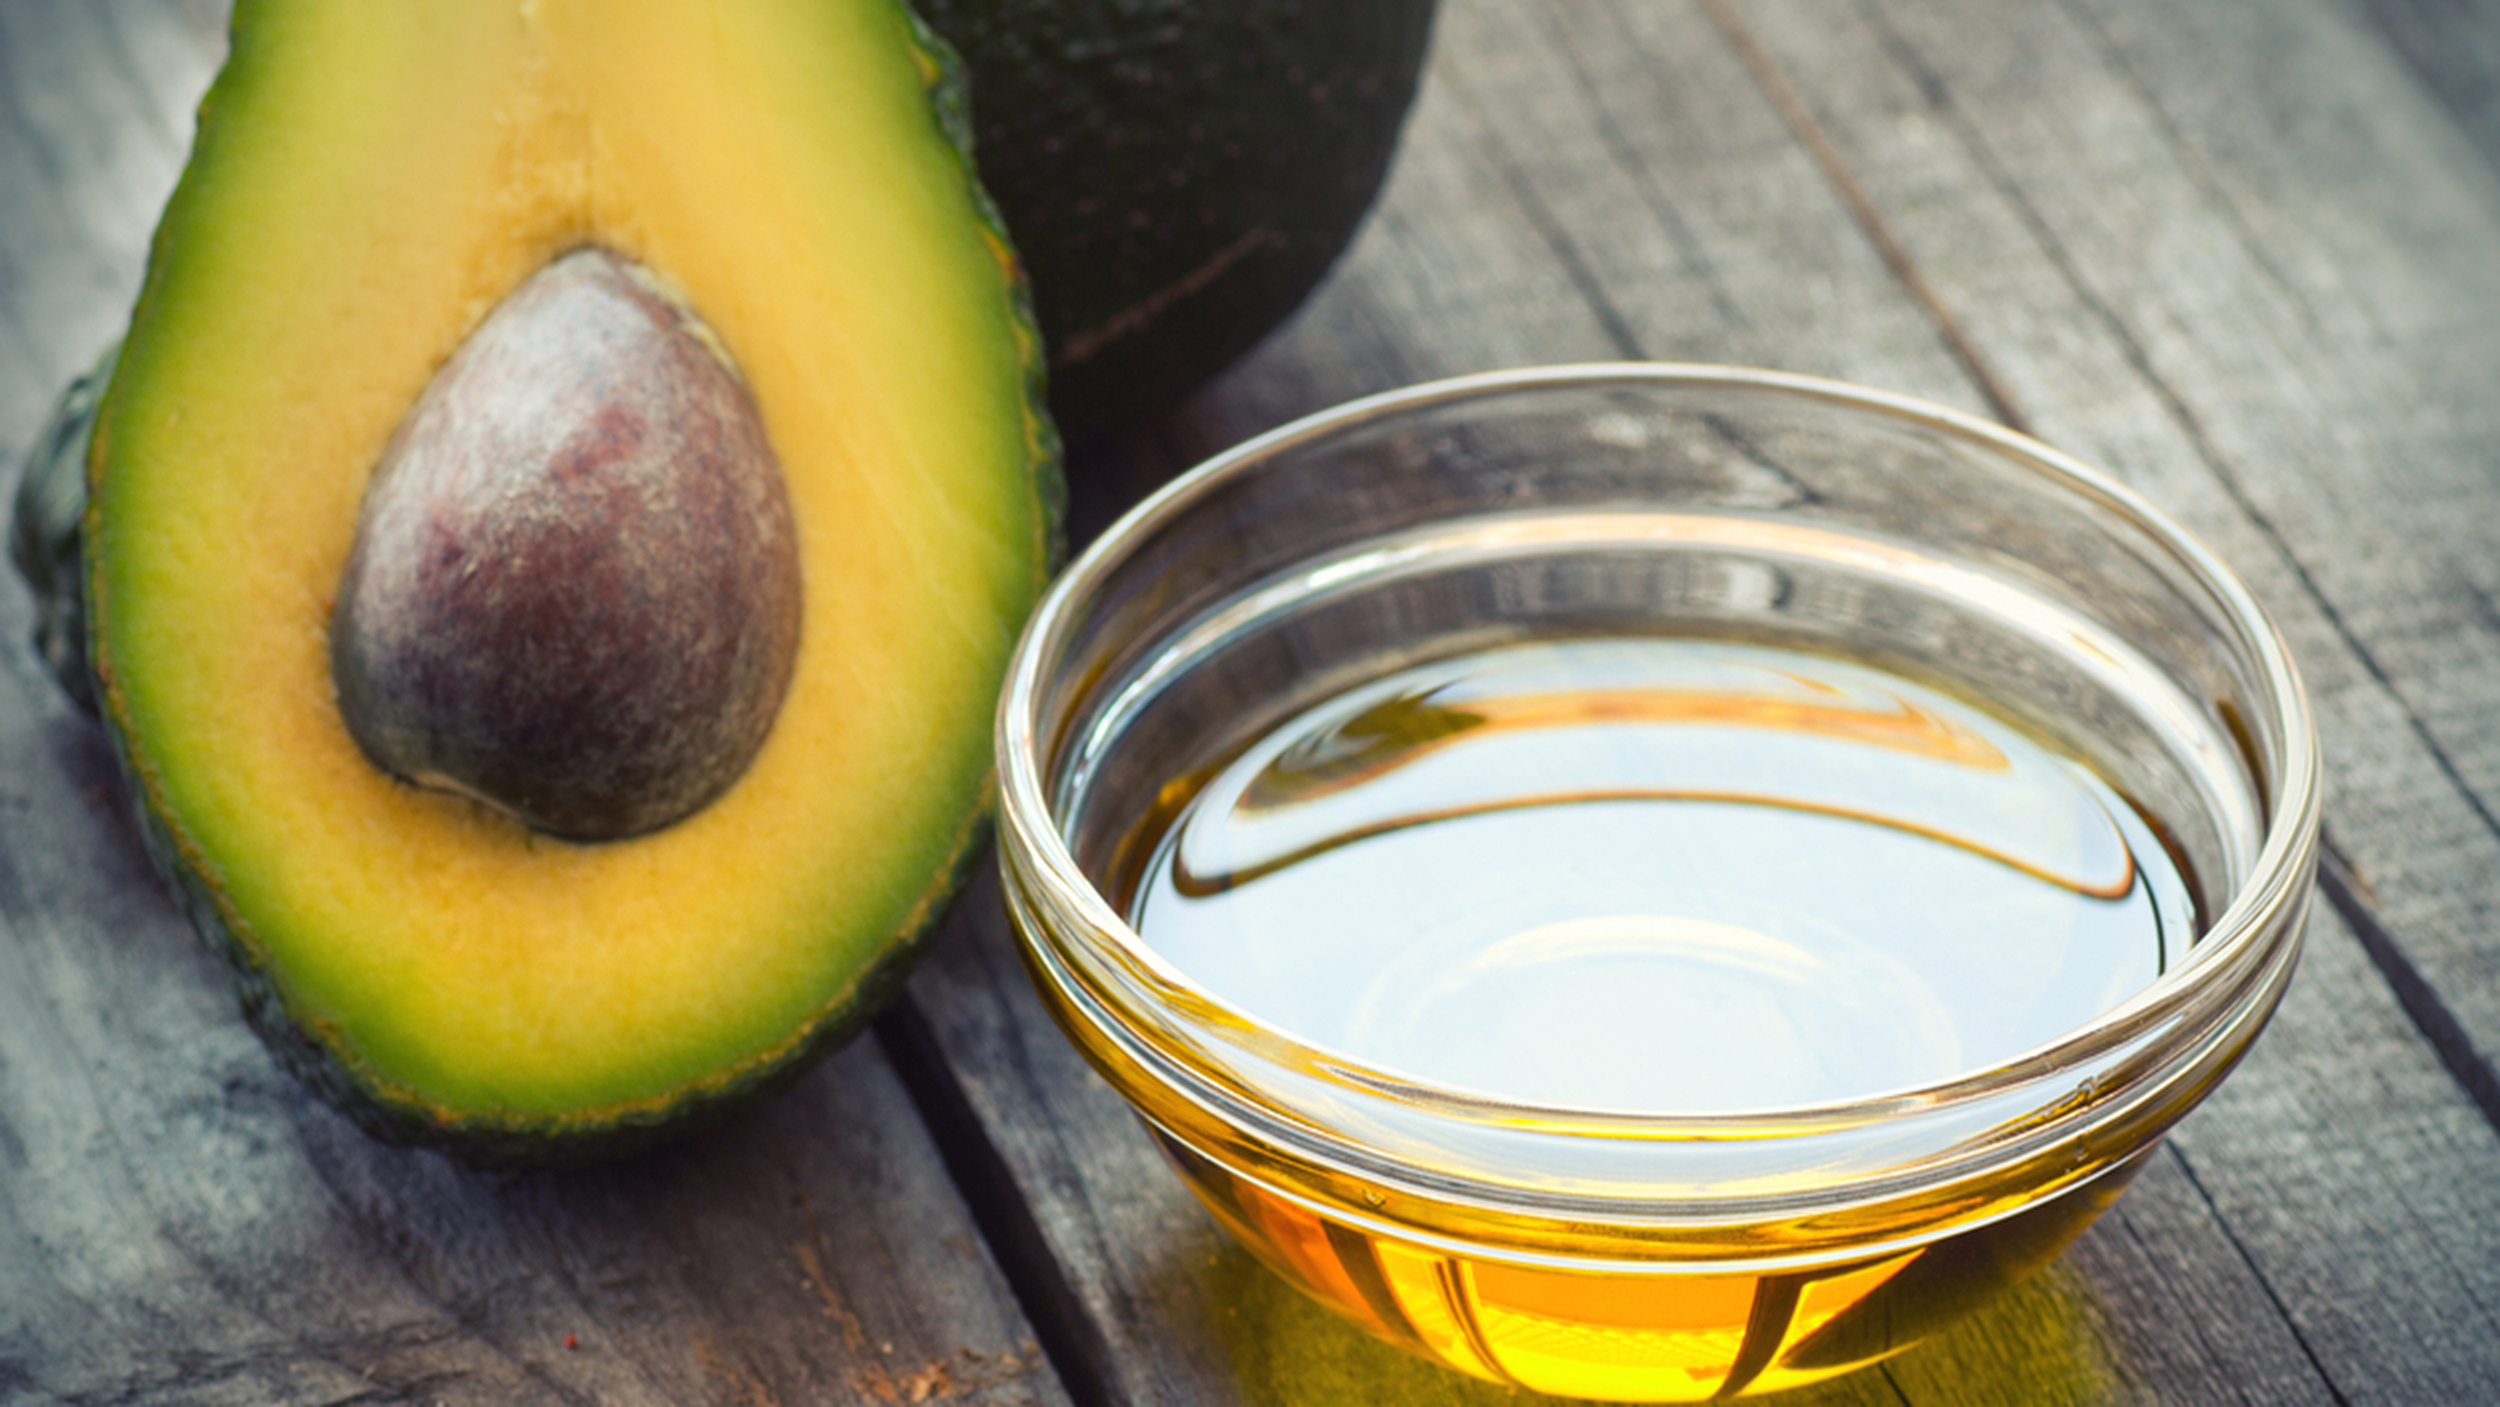 Avocado Oil Is The New Coconut Oil But How Do You Use It